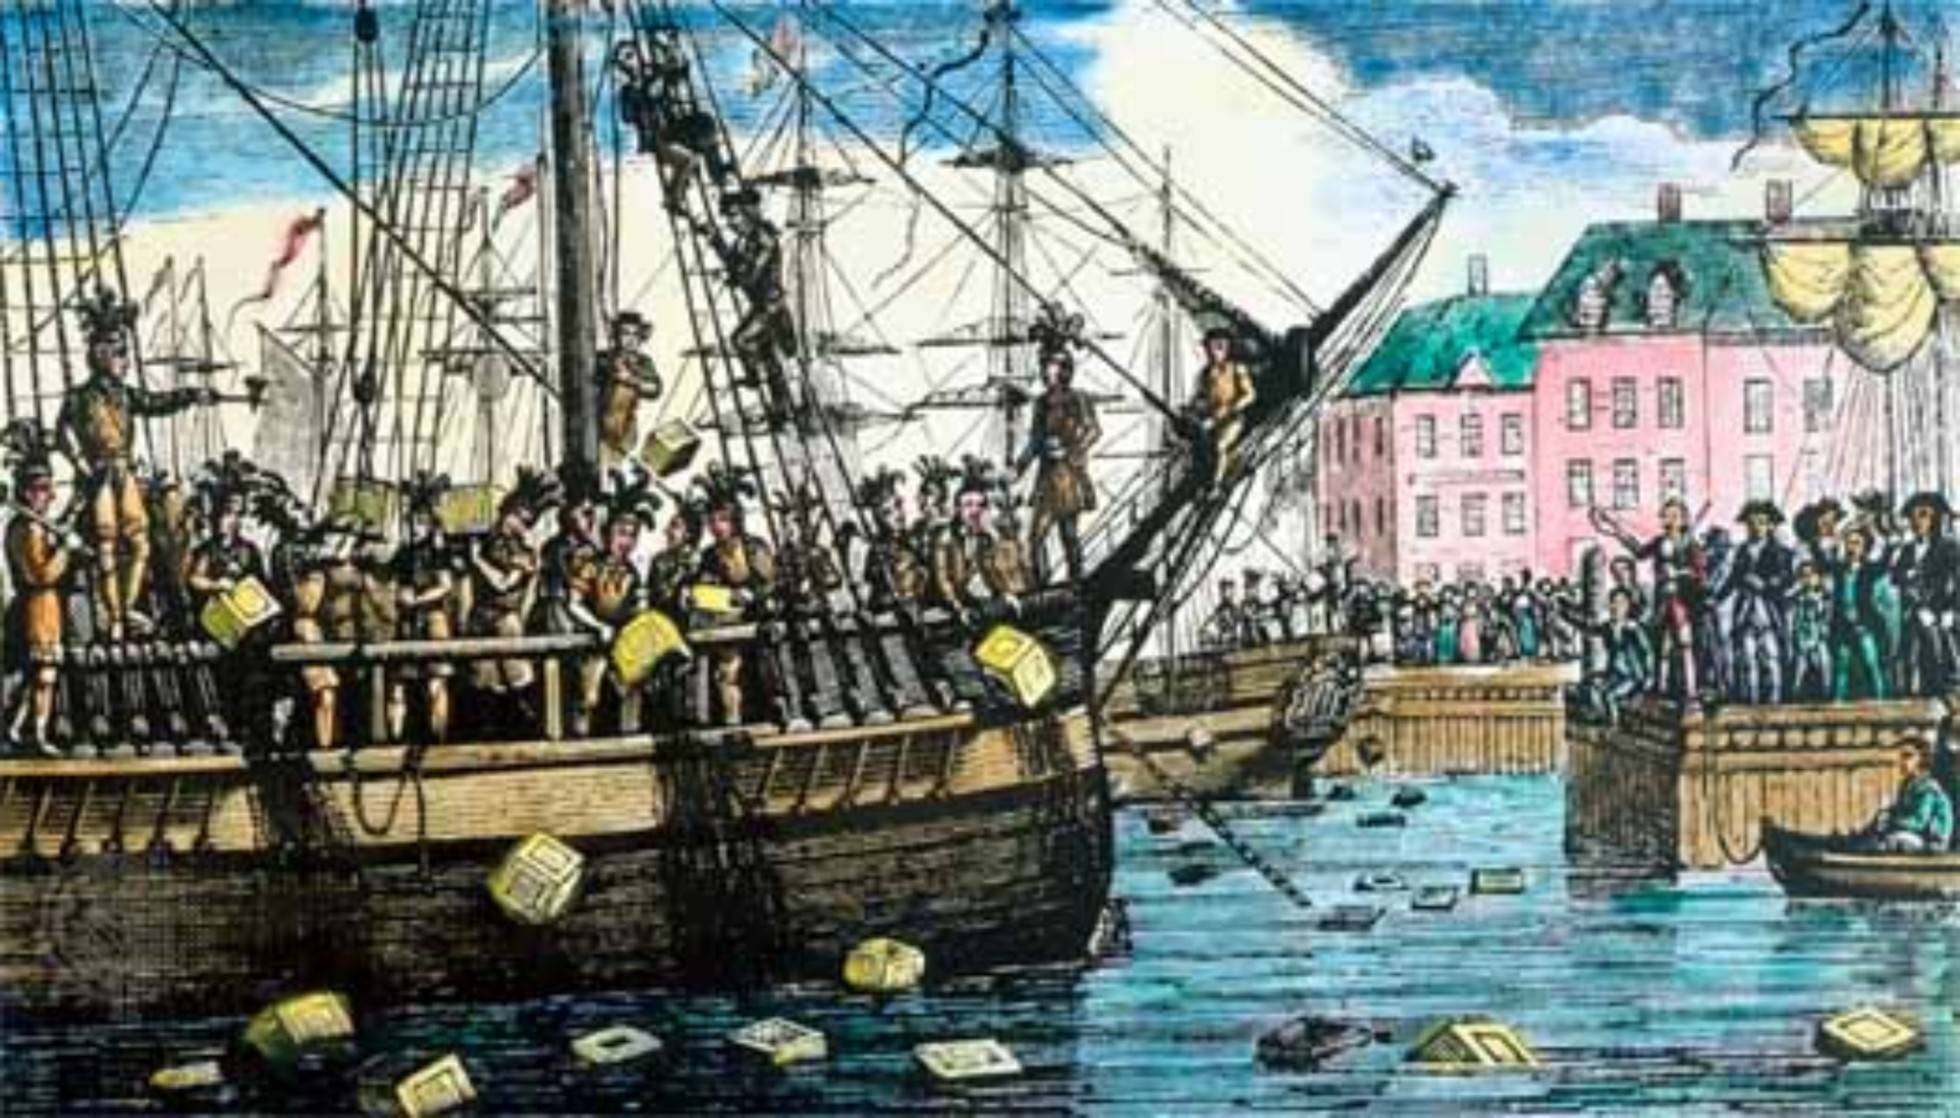 Colonists Boston Tea Party